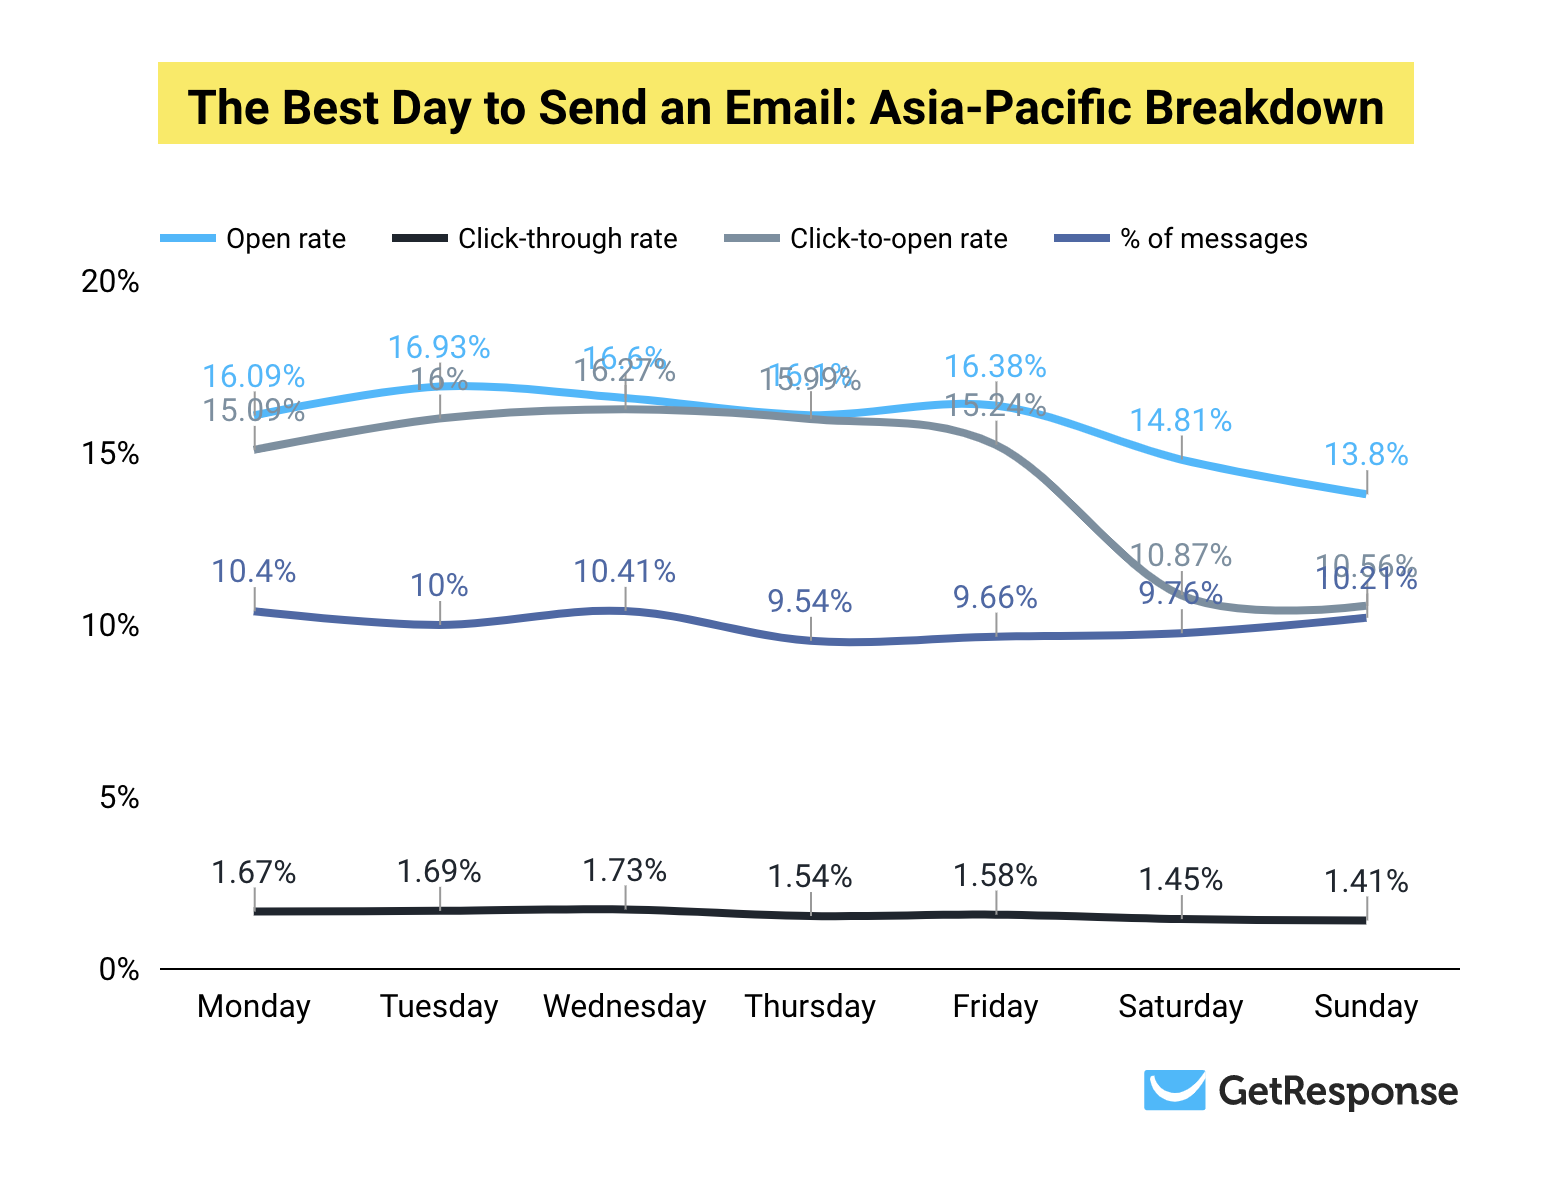 The Best Day to Send an Email: Asia-Pacific Stats Breakdown.